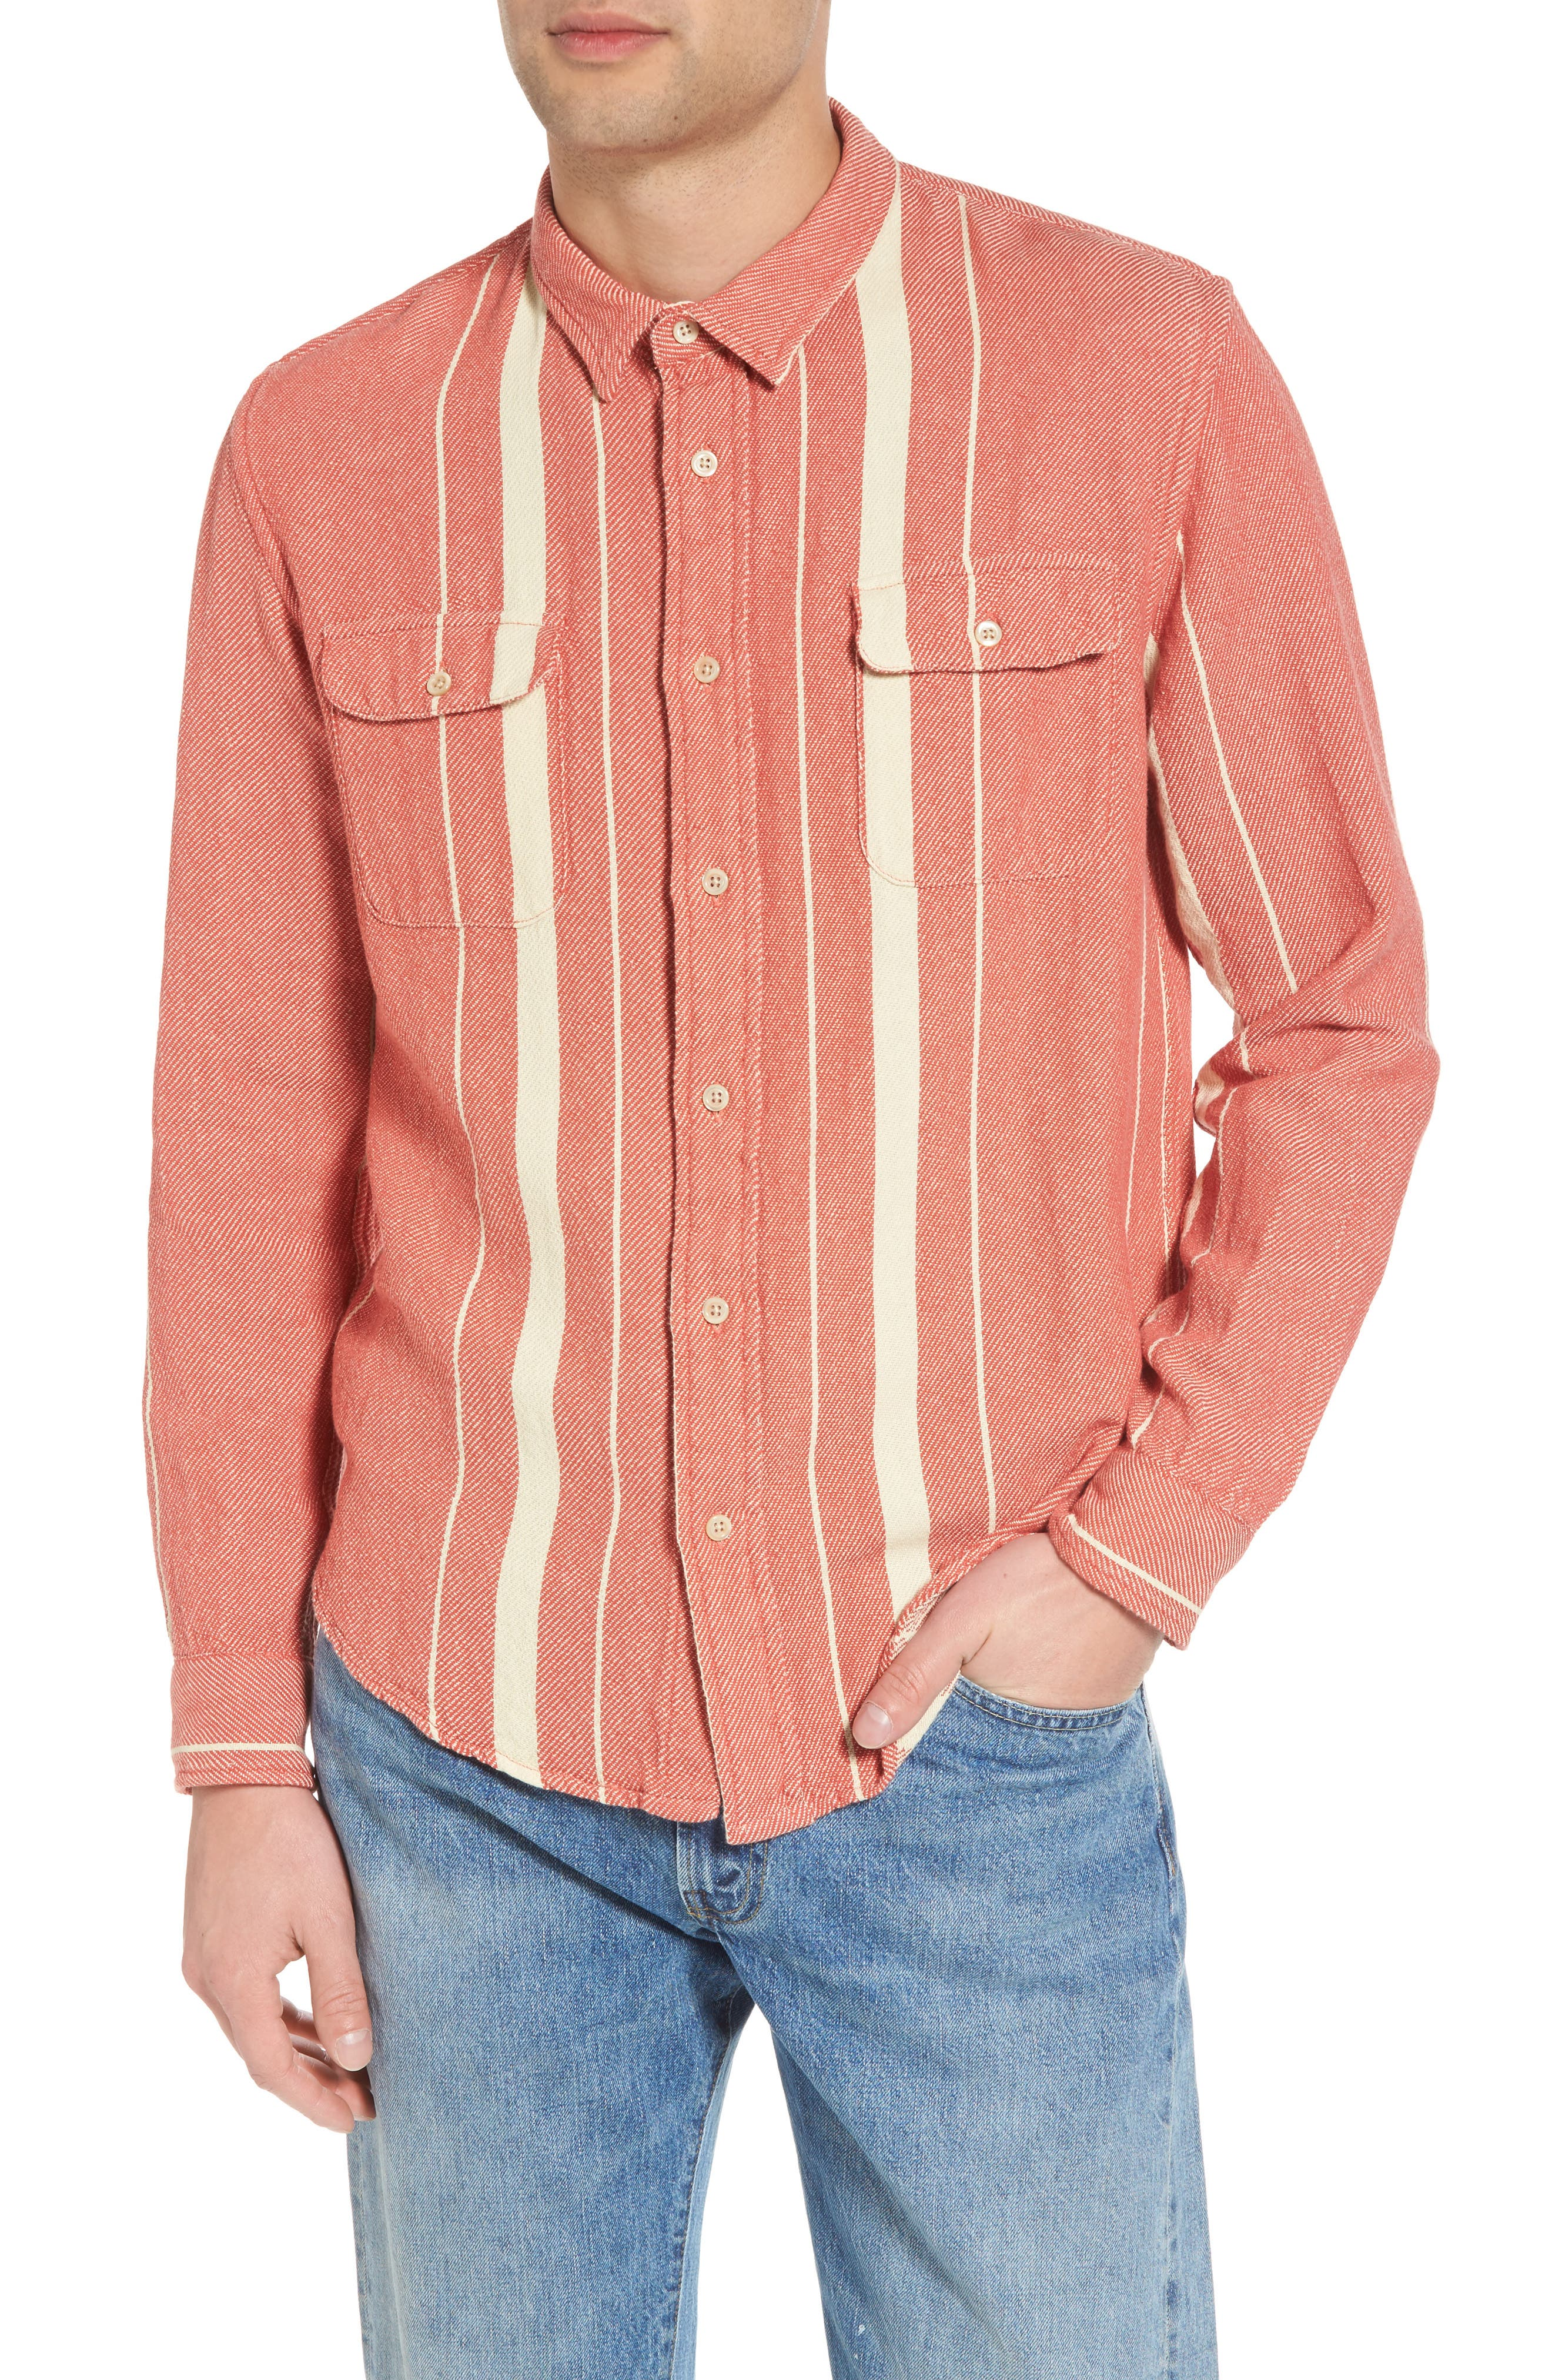 Shorthorn Plaid Woven Shirt,                             Main thumbnail 1, color,                             600